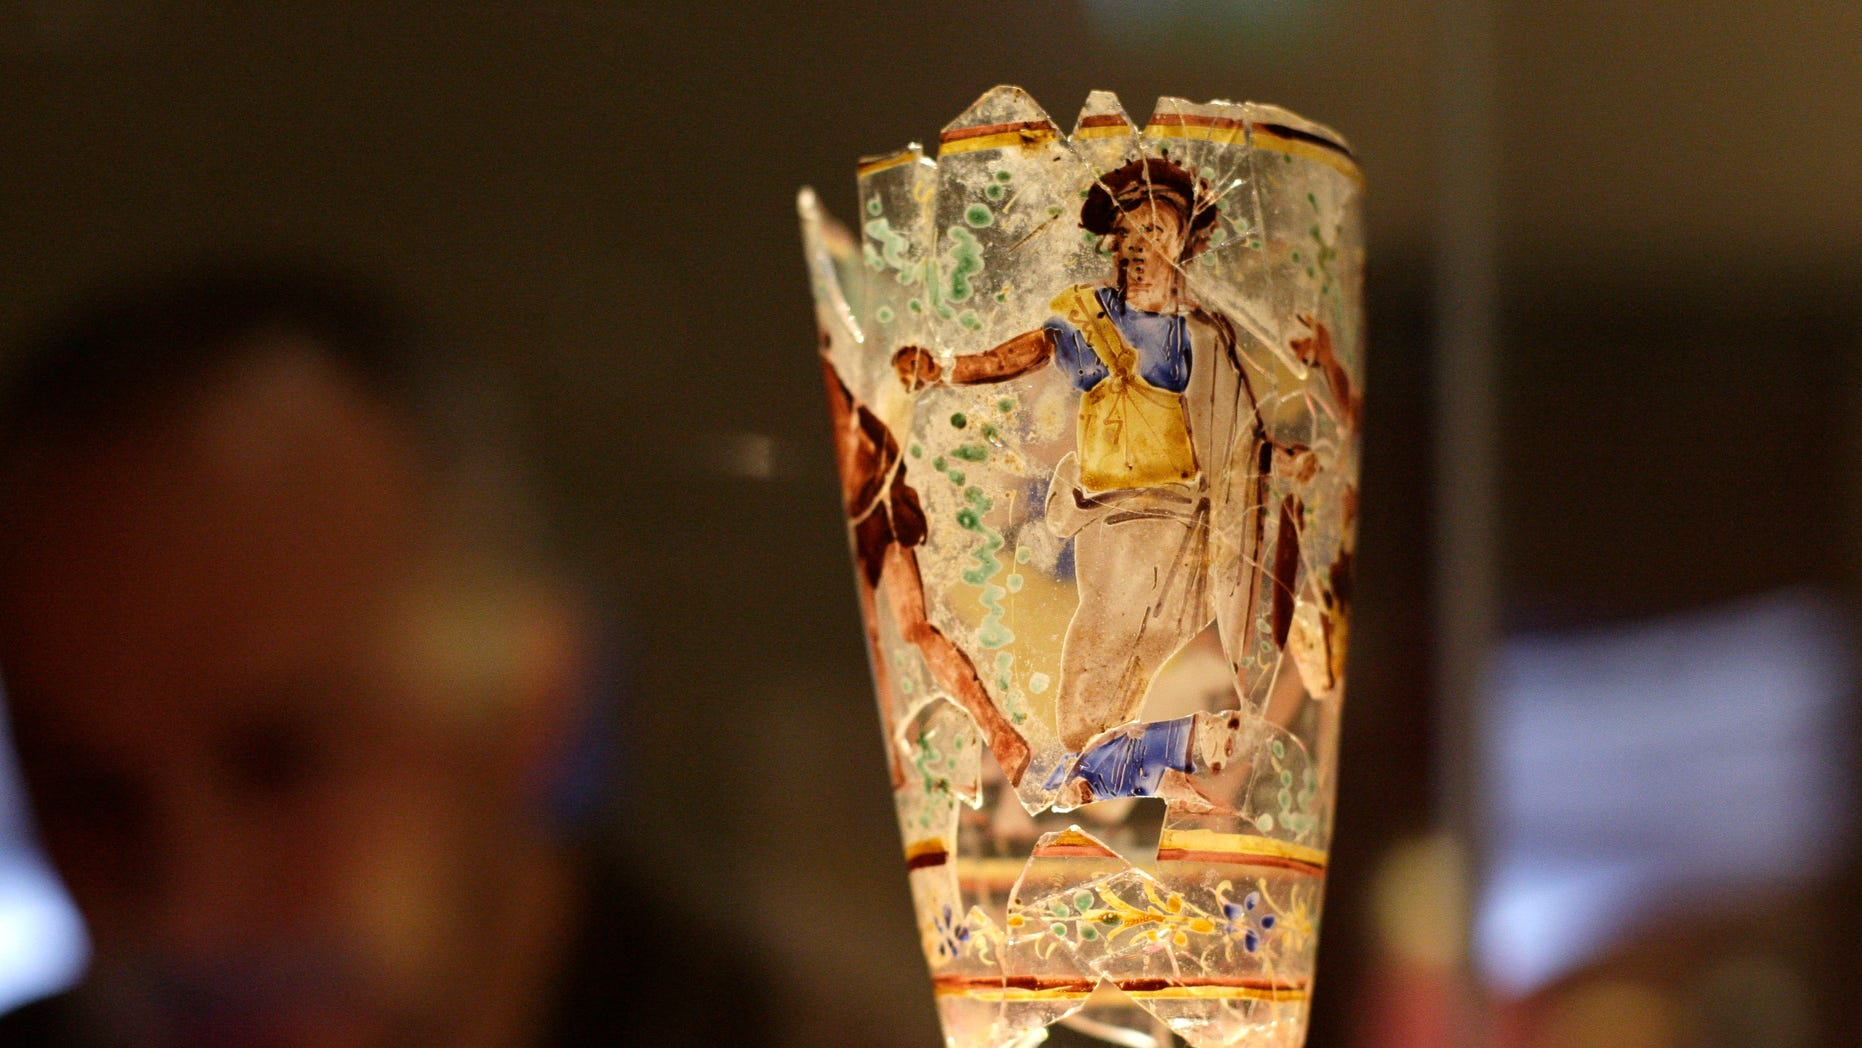 March 1: A 1st century AD Roman Egyptian enameled glass goblet discovered in Begram, Afghanistan, is seen on display in an exhibition entitled 'Afghanistan: Crossroads of the Ancient World', at the British Museum in London. The exhibition is showcasing over 200 objects belonging to the National Museum of Afghanistan accompanied by select items from the British Museum.